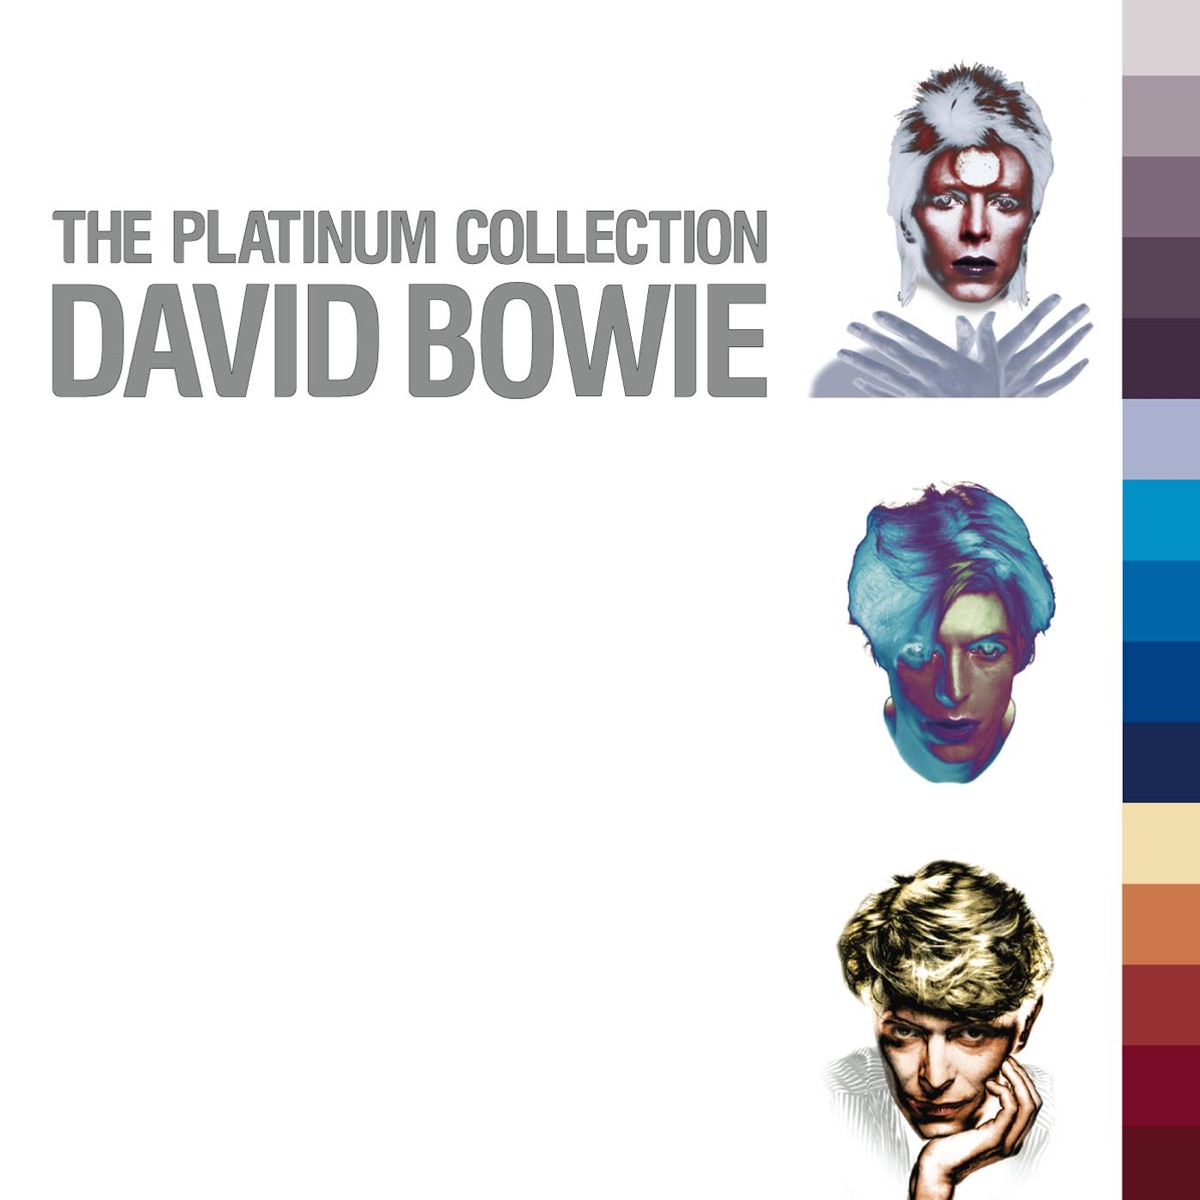 The Platinum Collection David Bowie CD cover